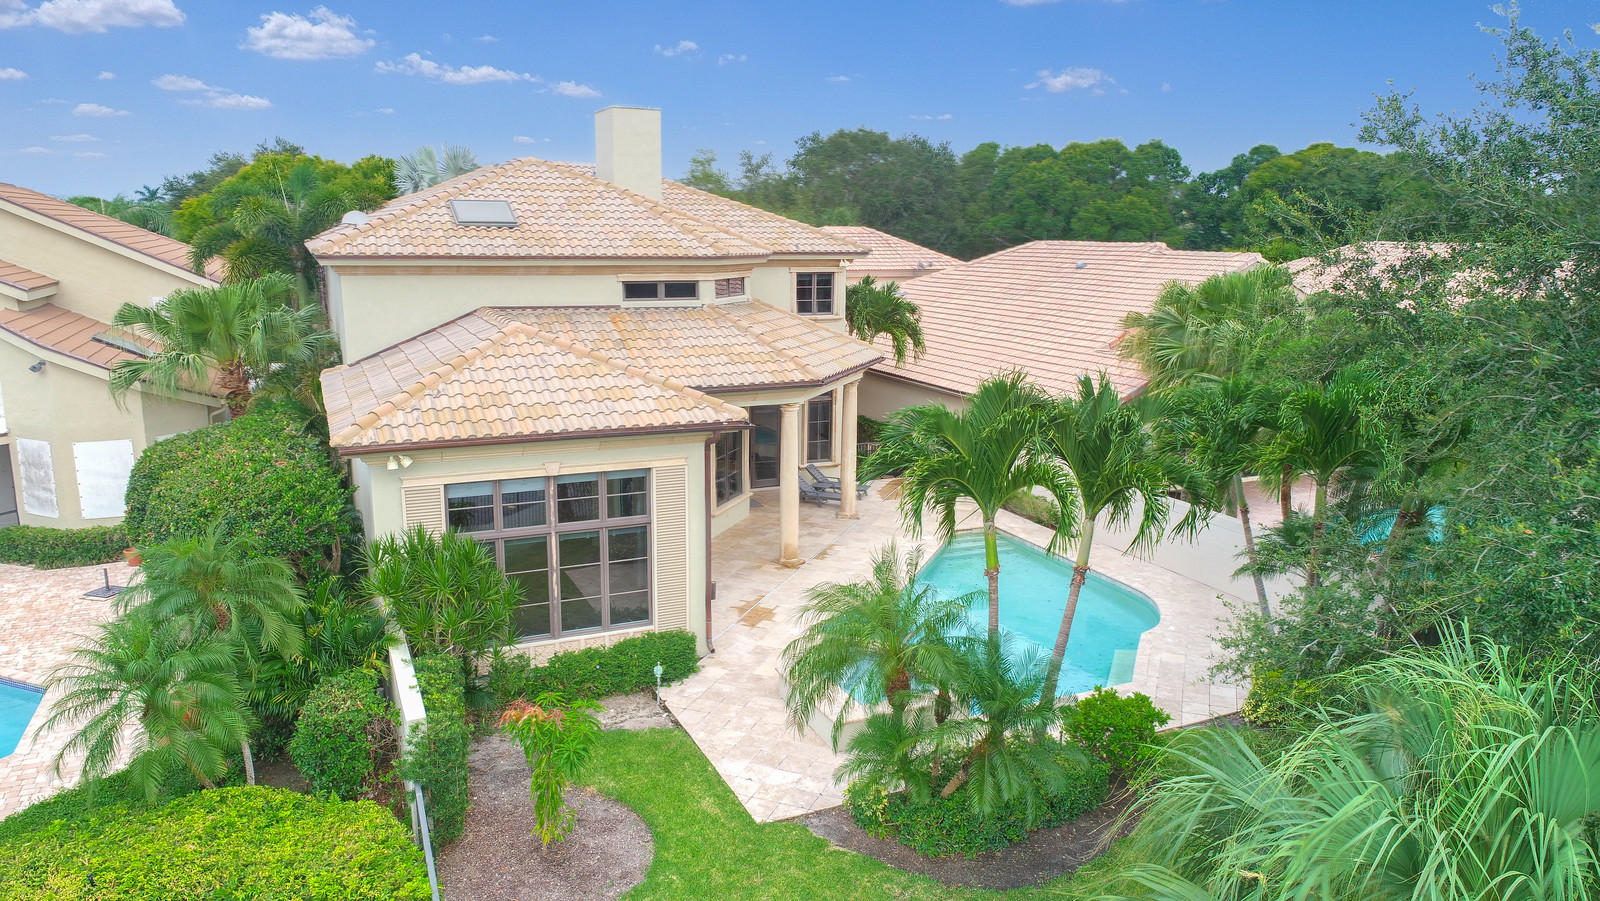 13741 Le Havre Drive, Palm Beach Gardens, Florida 33410, 5 Bedrooms Bedrooms, ,5.1 BathroomsBathrooms,A,Single family,Le Havre,RX-10451127